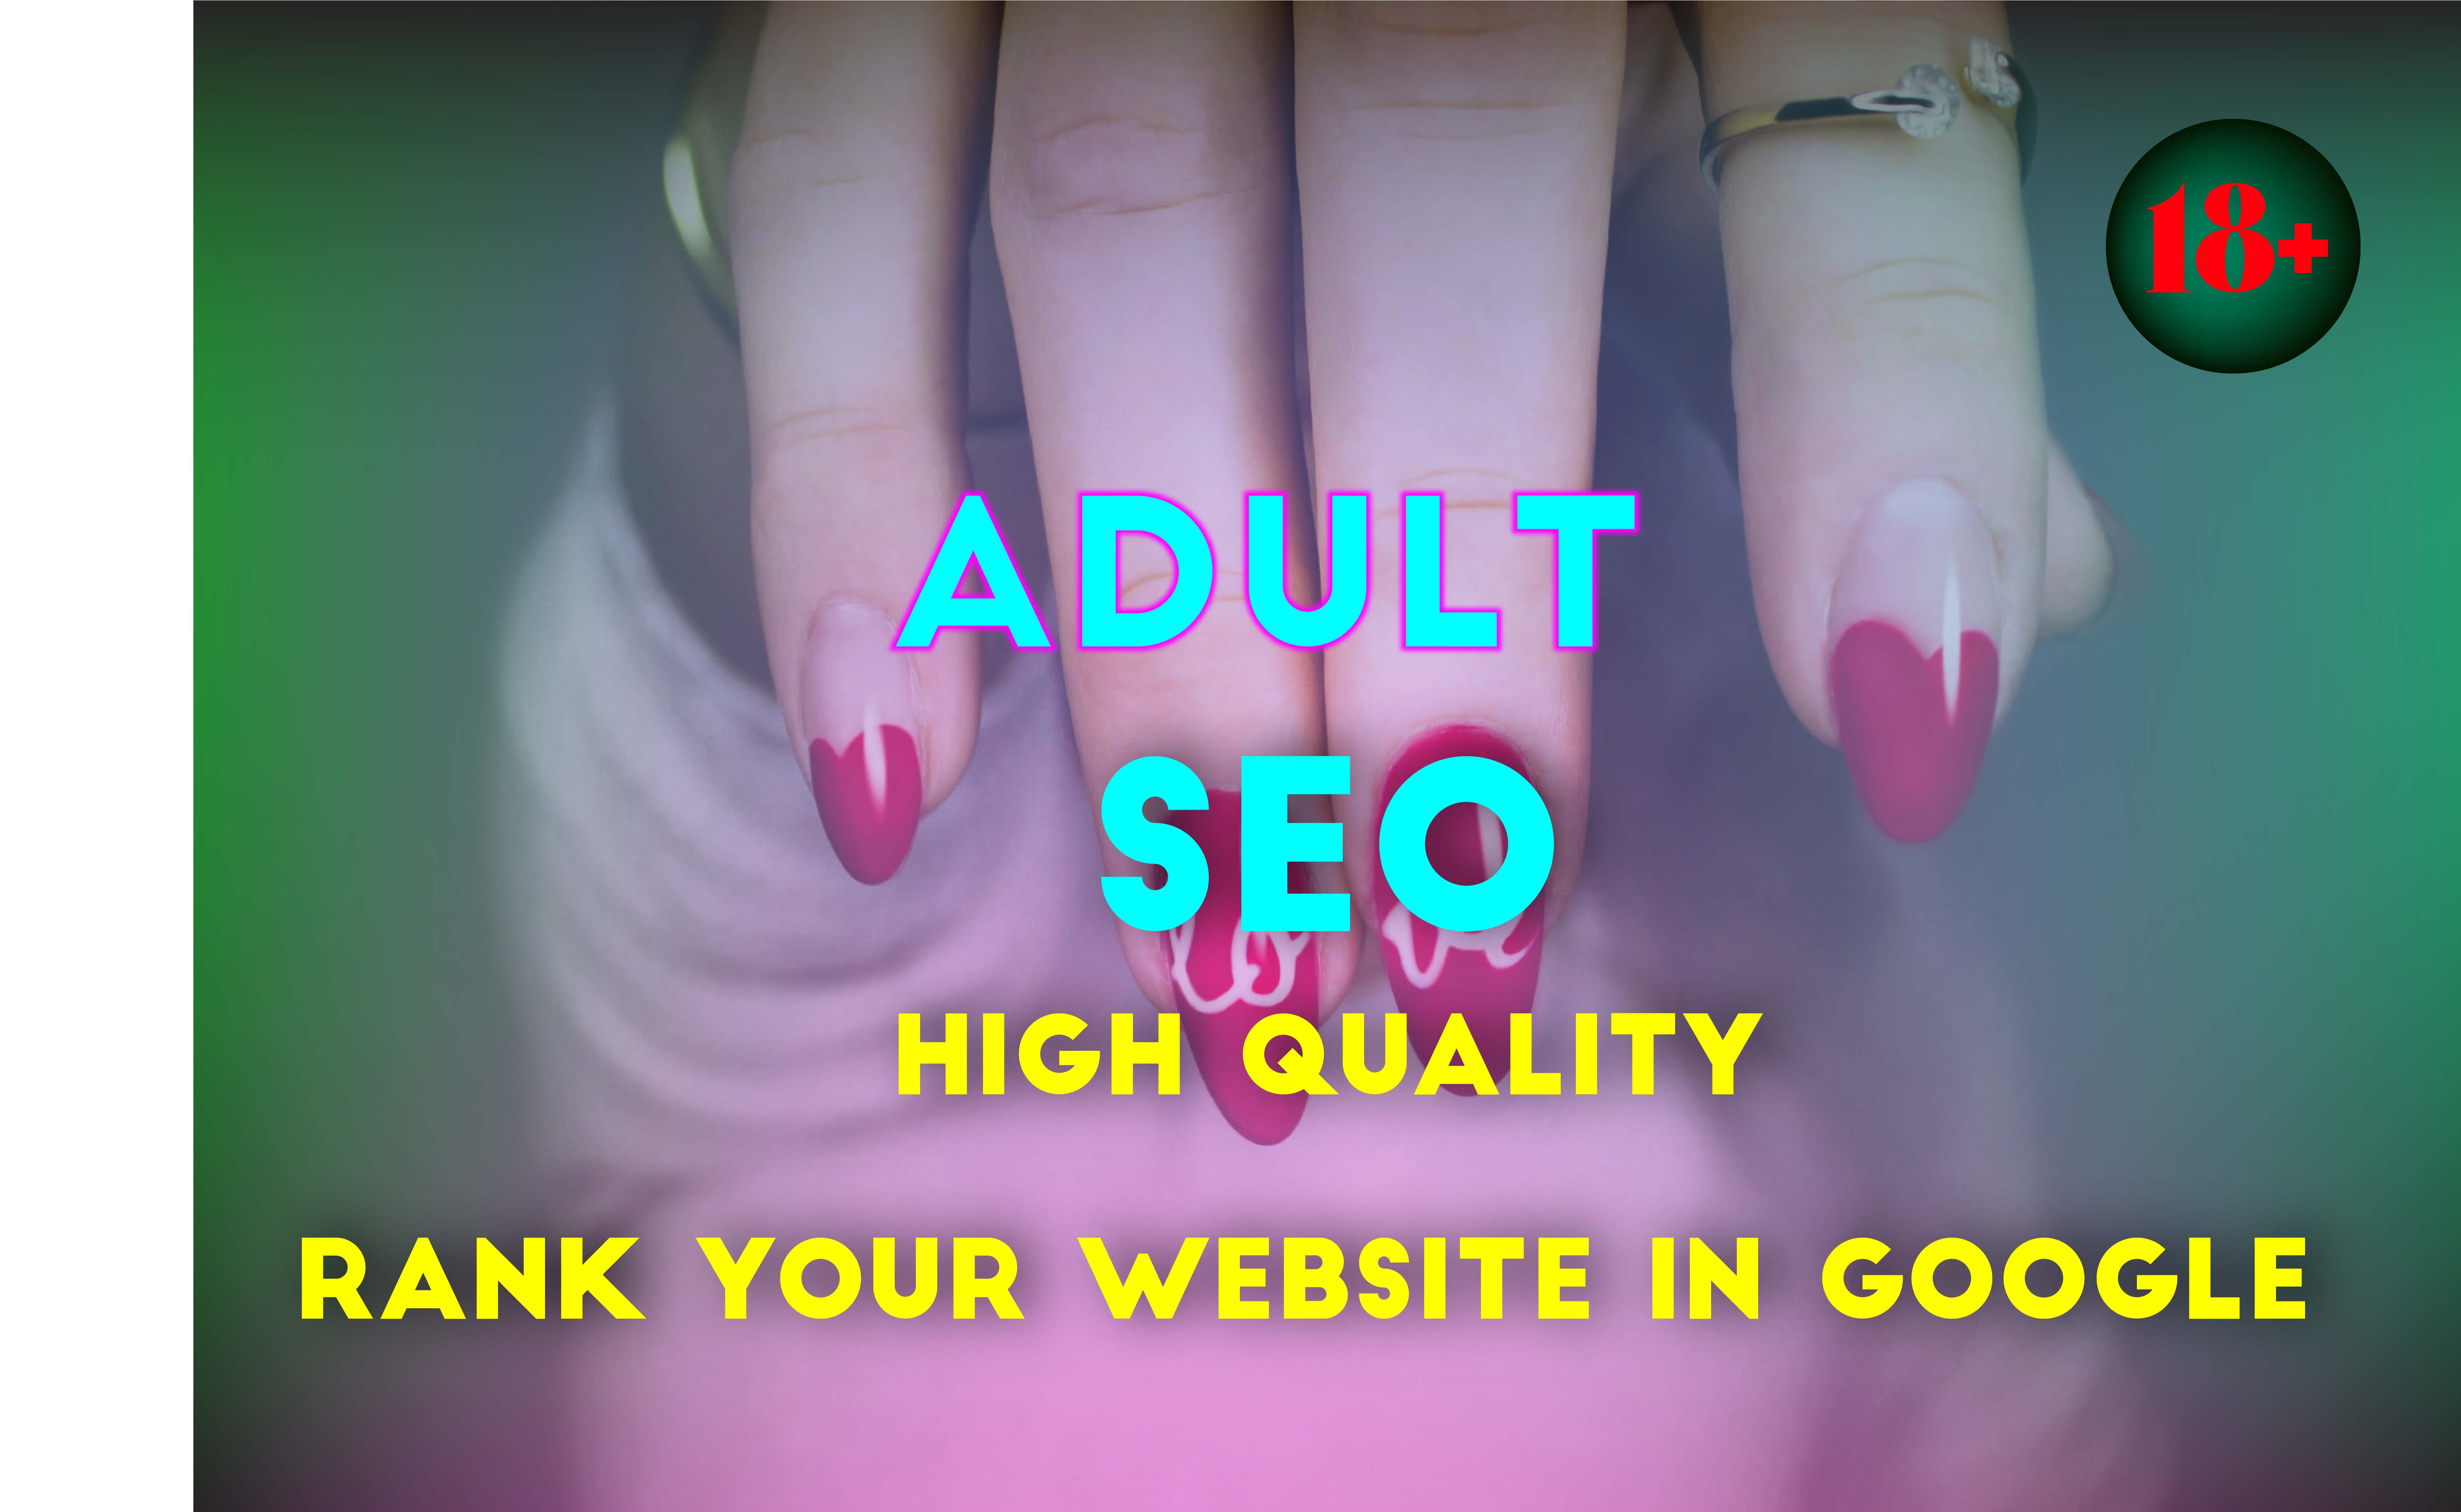 create 350+ high quality adult backlinks for your website ranking seo